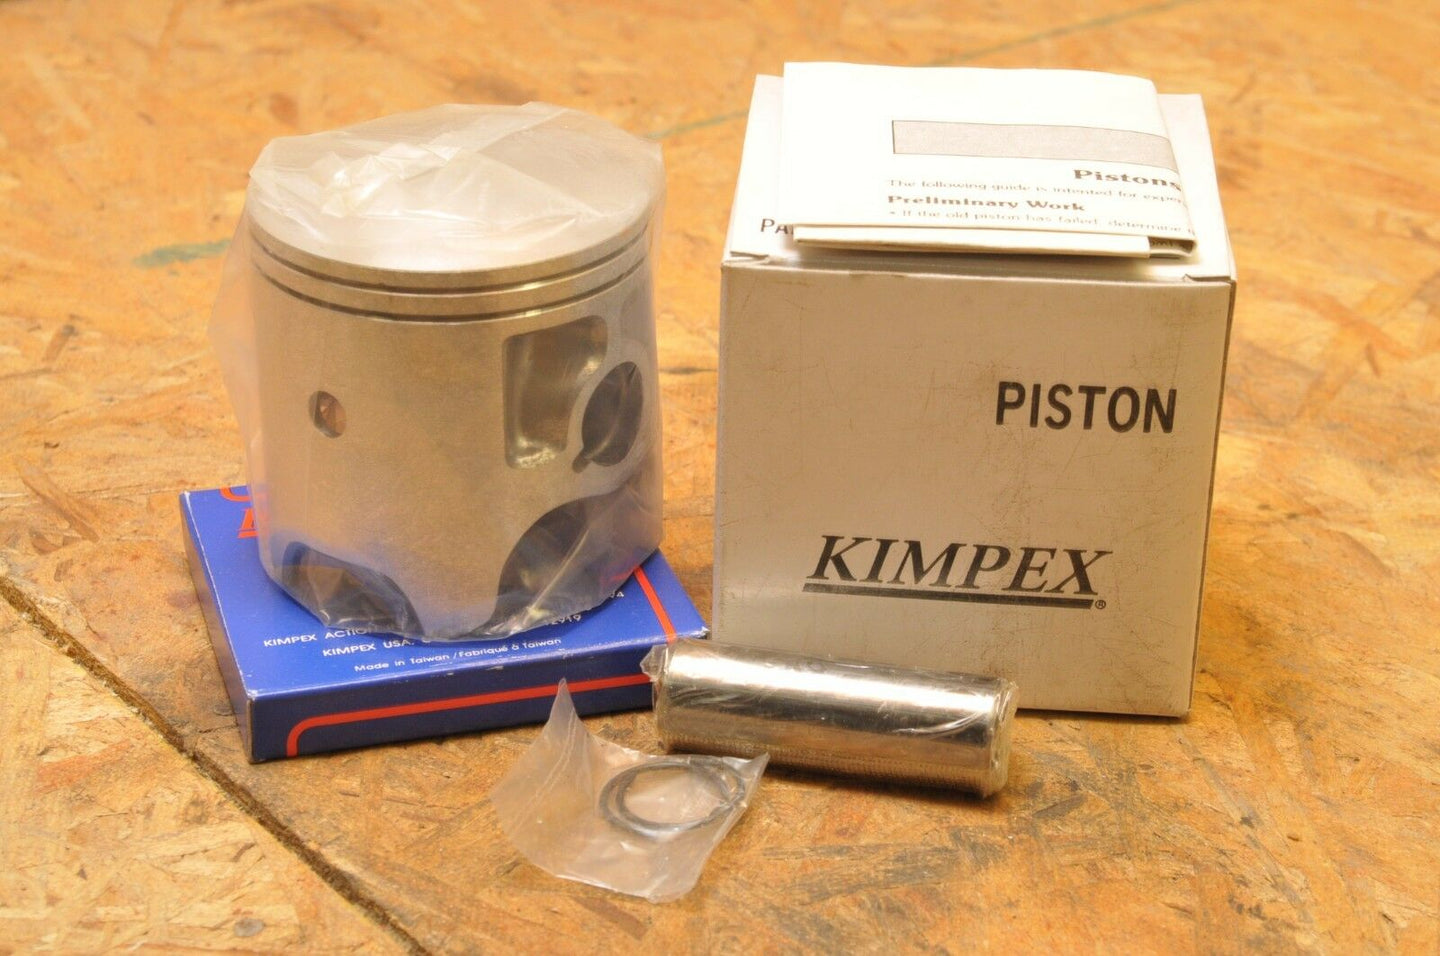 NEW NOS KIMPEX PISTON KIT 09-828 YAMAHA 700 V-MAX MOUNTAIN SX VENTURE 1997-2003